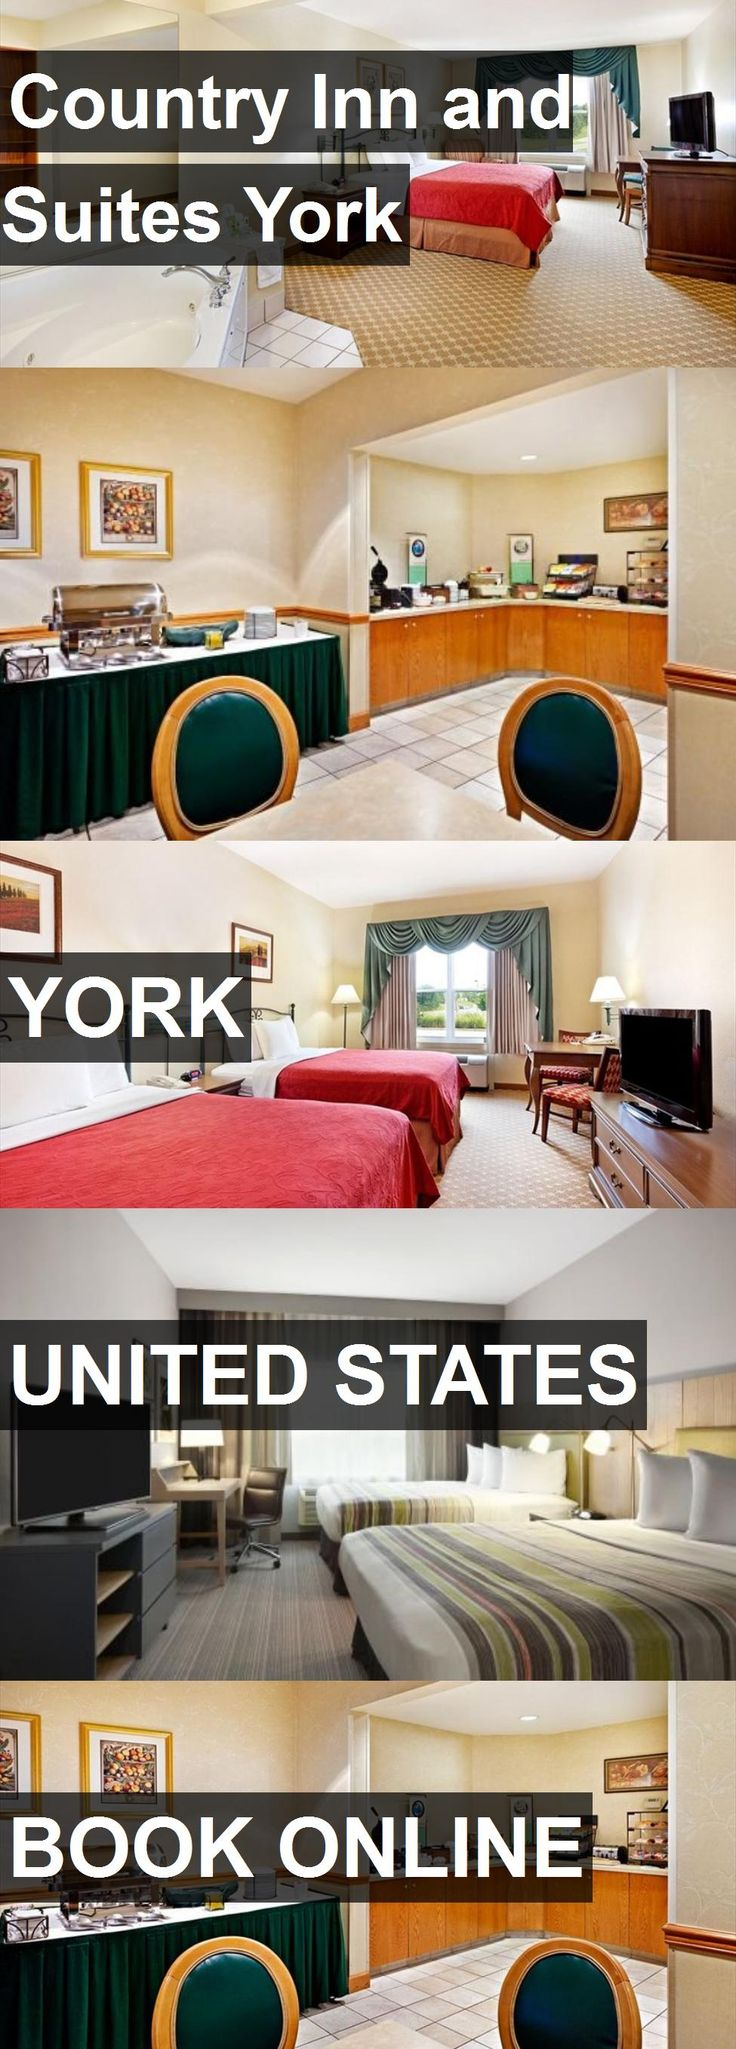 Hotel Country Inn and Suites York in York, United States. For more information, photos, reviews and best prices please follow the link. #UnitedStates #York #travel #vacation #hotel